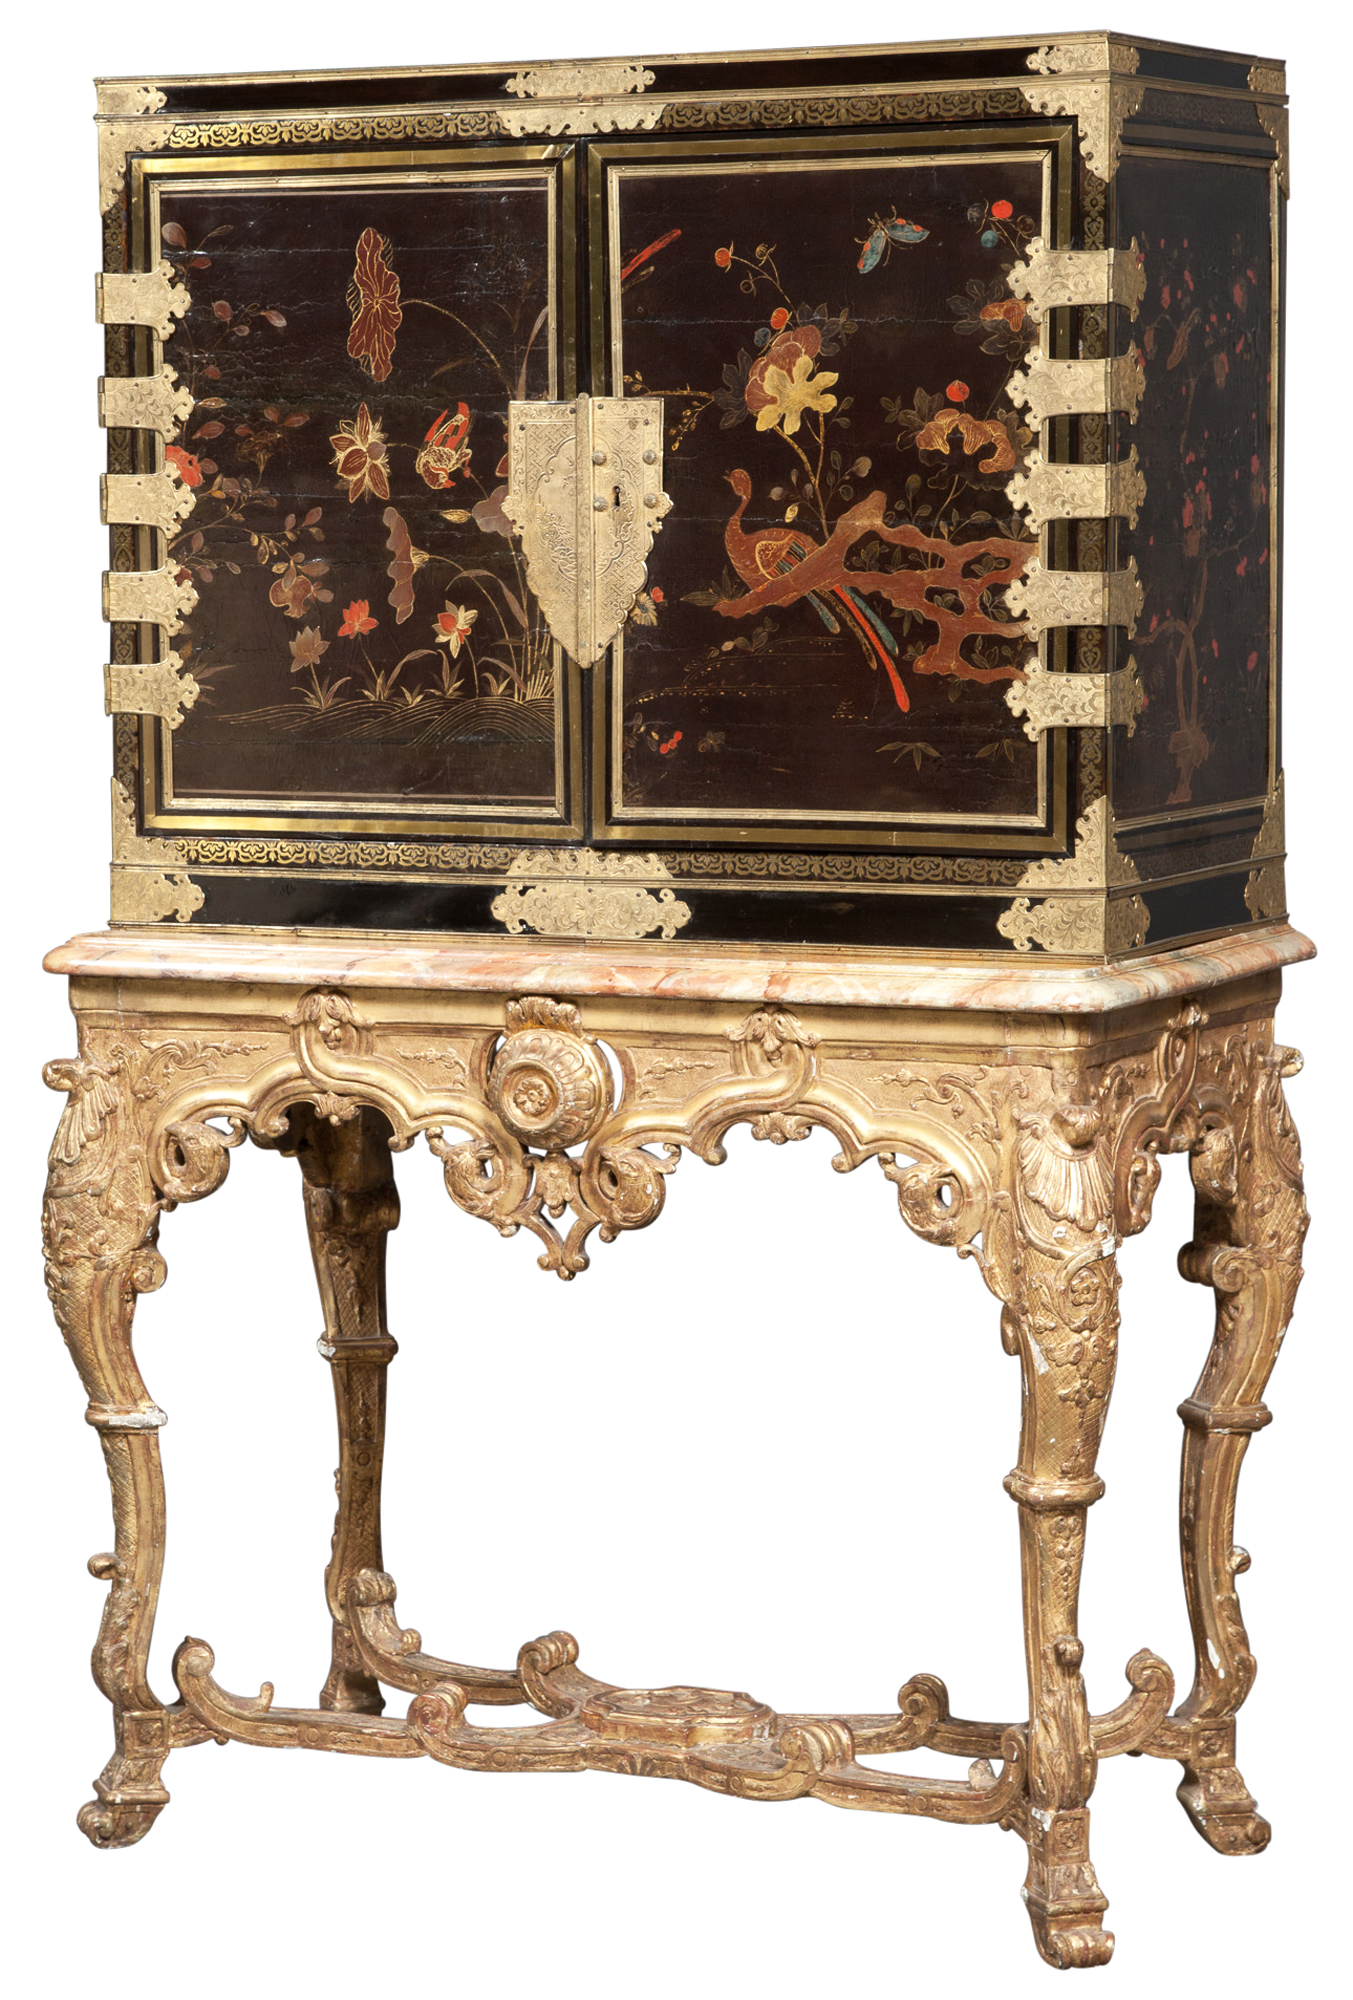 Lot image - Japanese Lacquer, Tortoiseshell, Ebony, Brass-Inlaid and Gilt-Metal-Mounted Cabinet on Régence Giltwood Stand